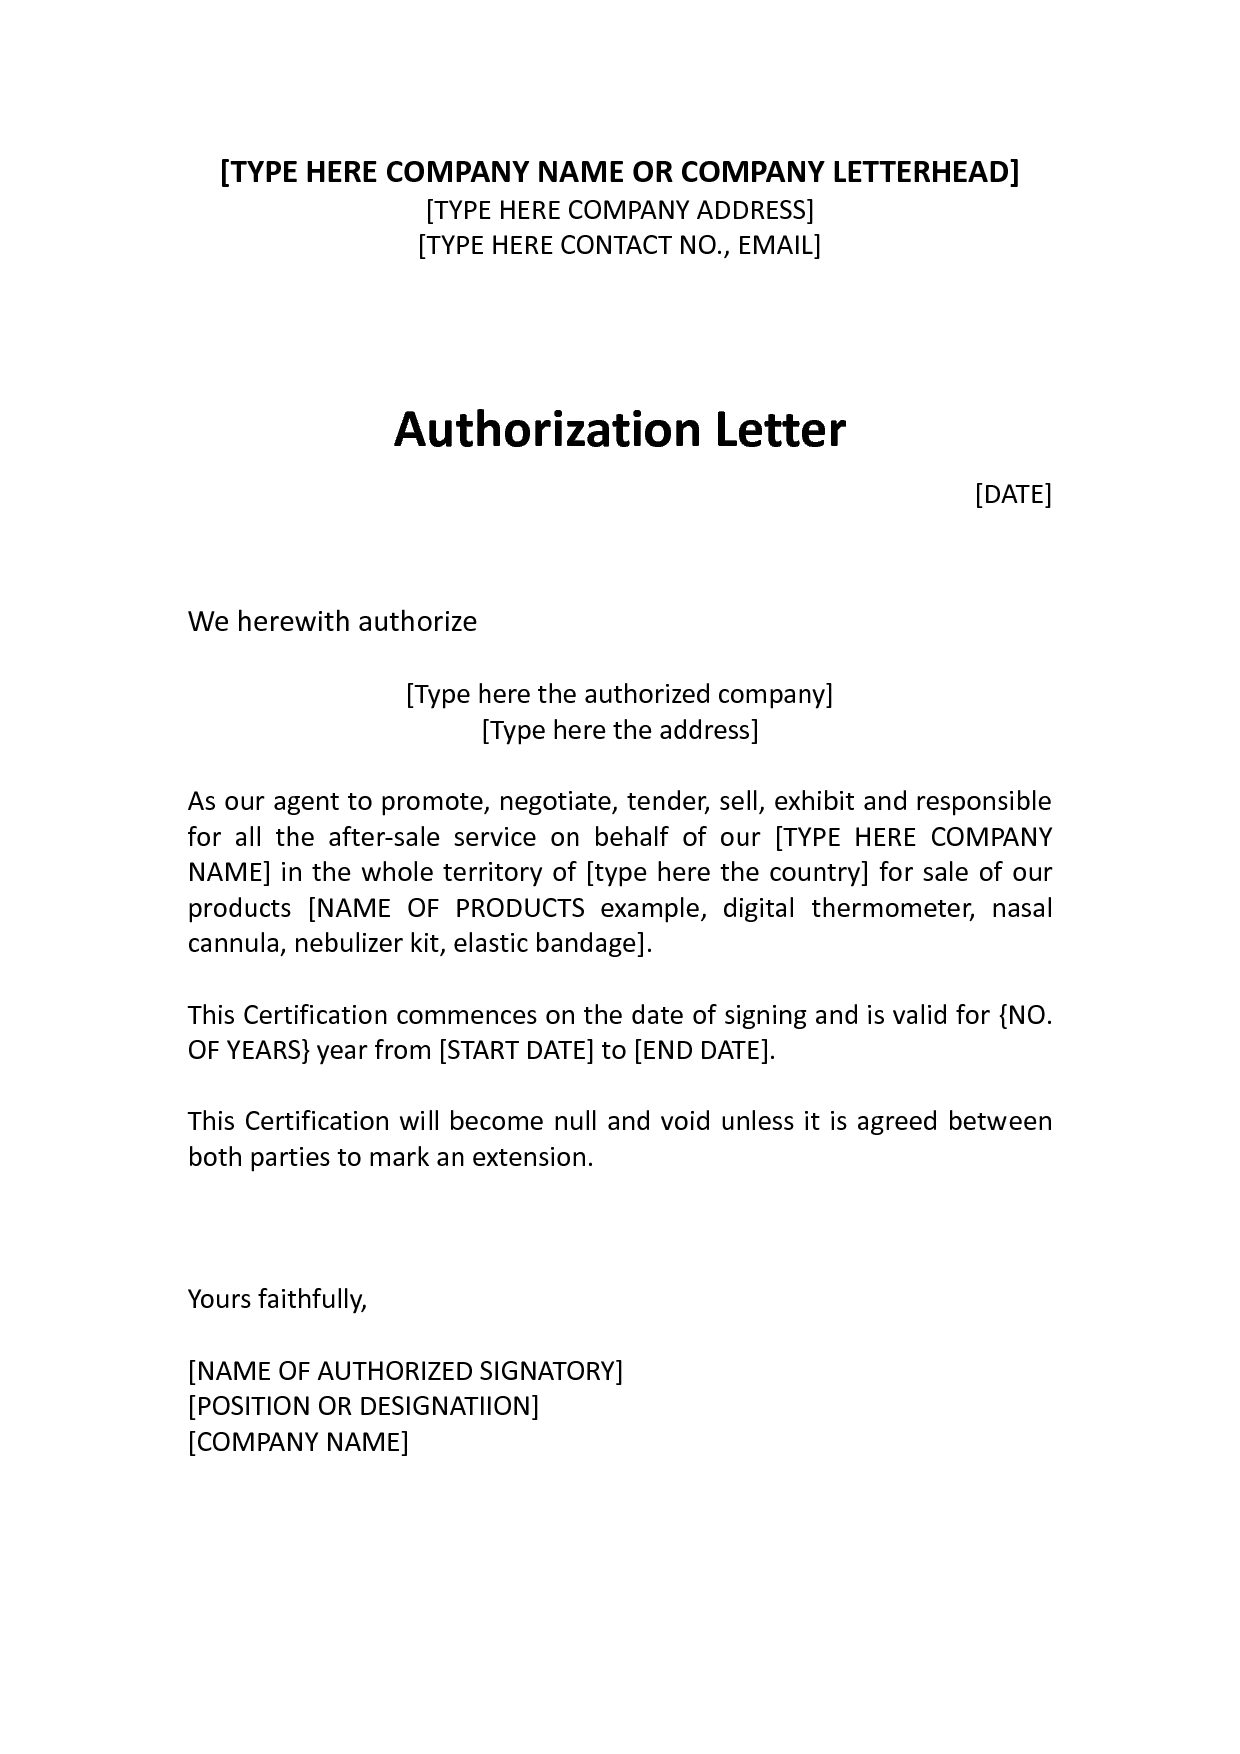 Proof Of Rent Letter Template - Authorization Distributor Letter Sample Distributor Dealer